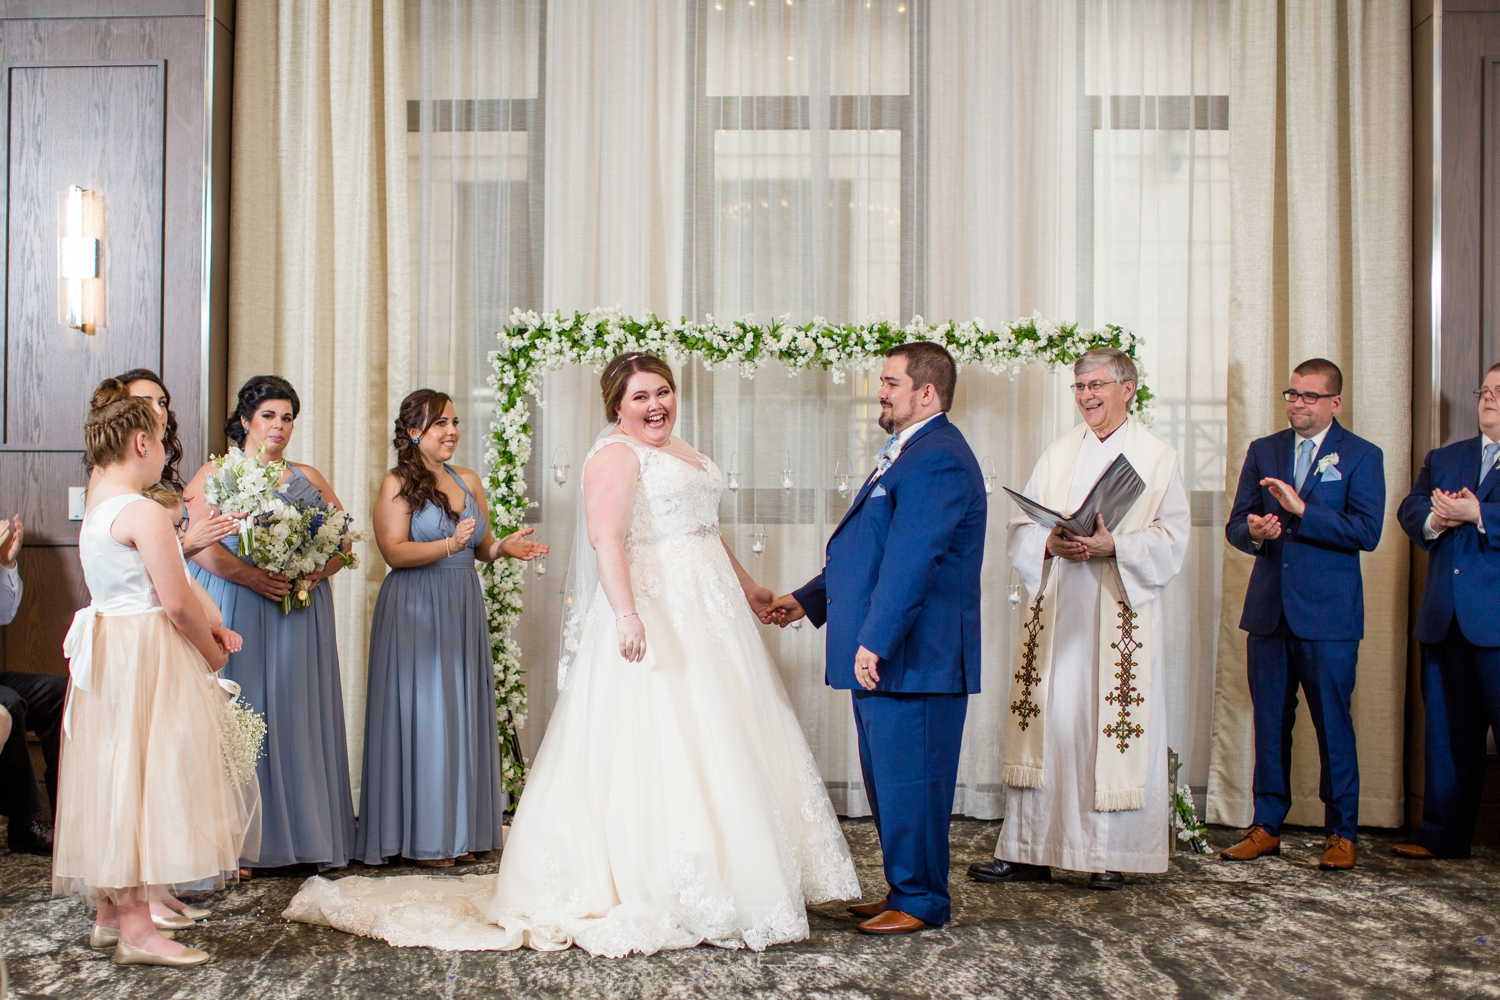 embassy suites downtown pittsburgh wedding photos, downtown pittsburgh wedding pictures, pittsburgh wedding photographer, pittsburgh engagement photographer, blue wedding inspiration